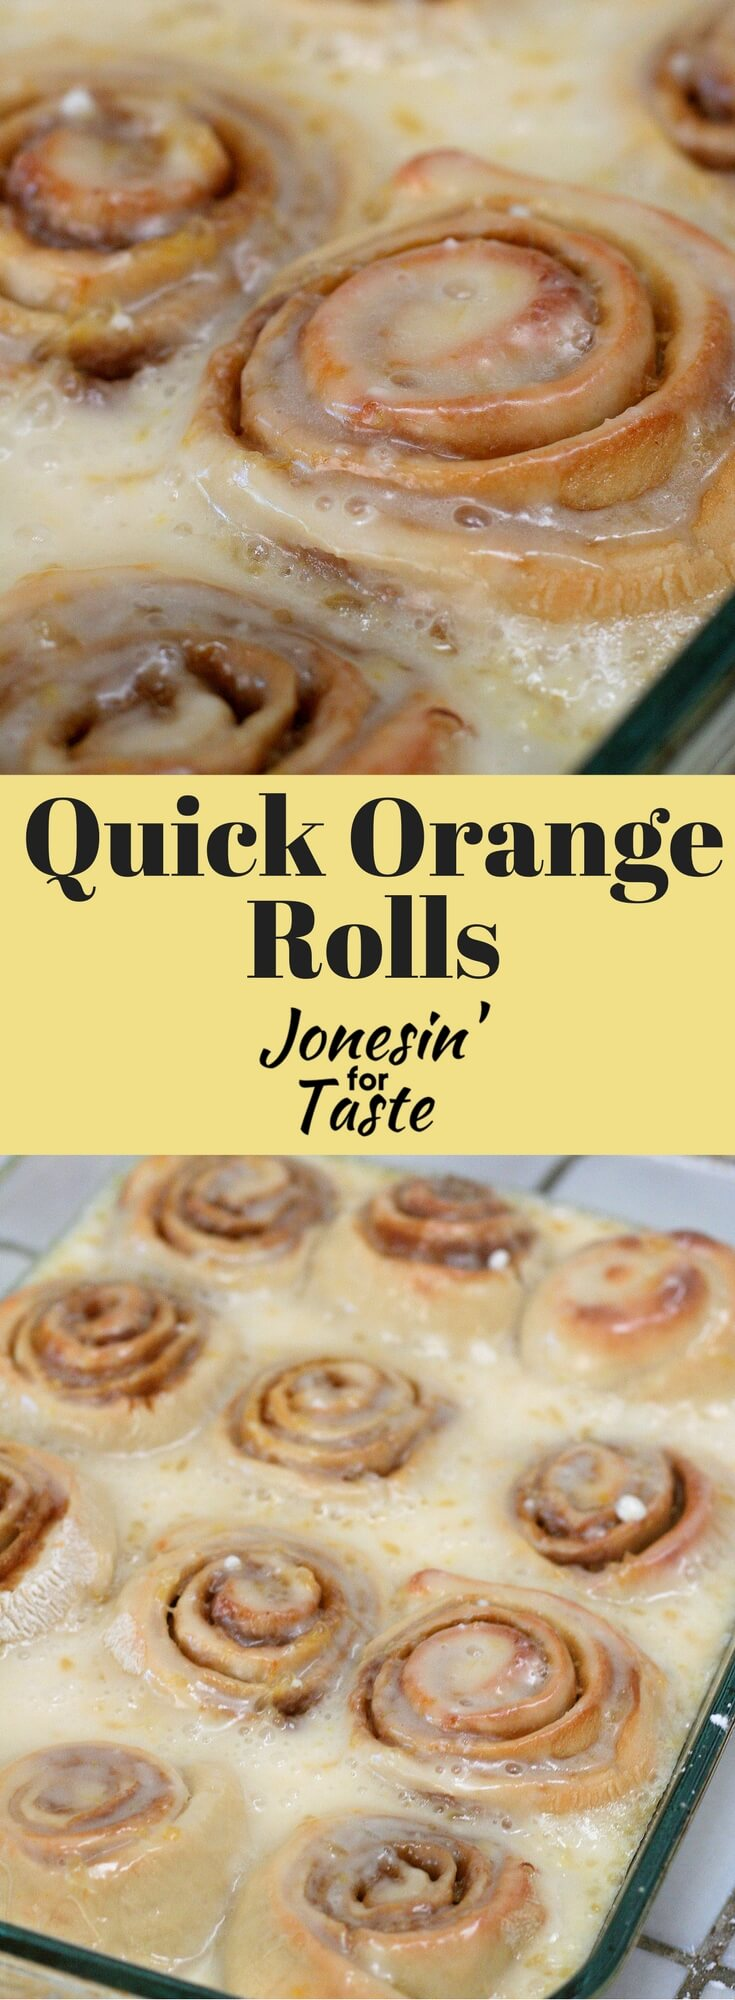 Orange rolls topped with an orange glaze can be made and enjoyed in less than an hour from beginning to end, no yeast required!